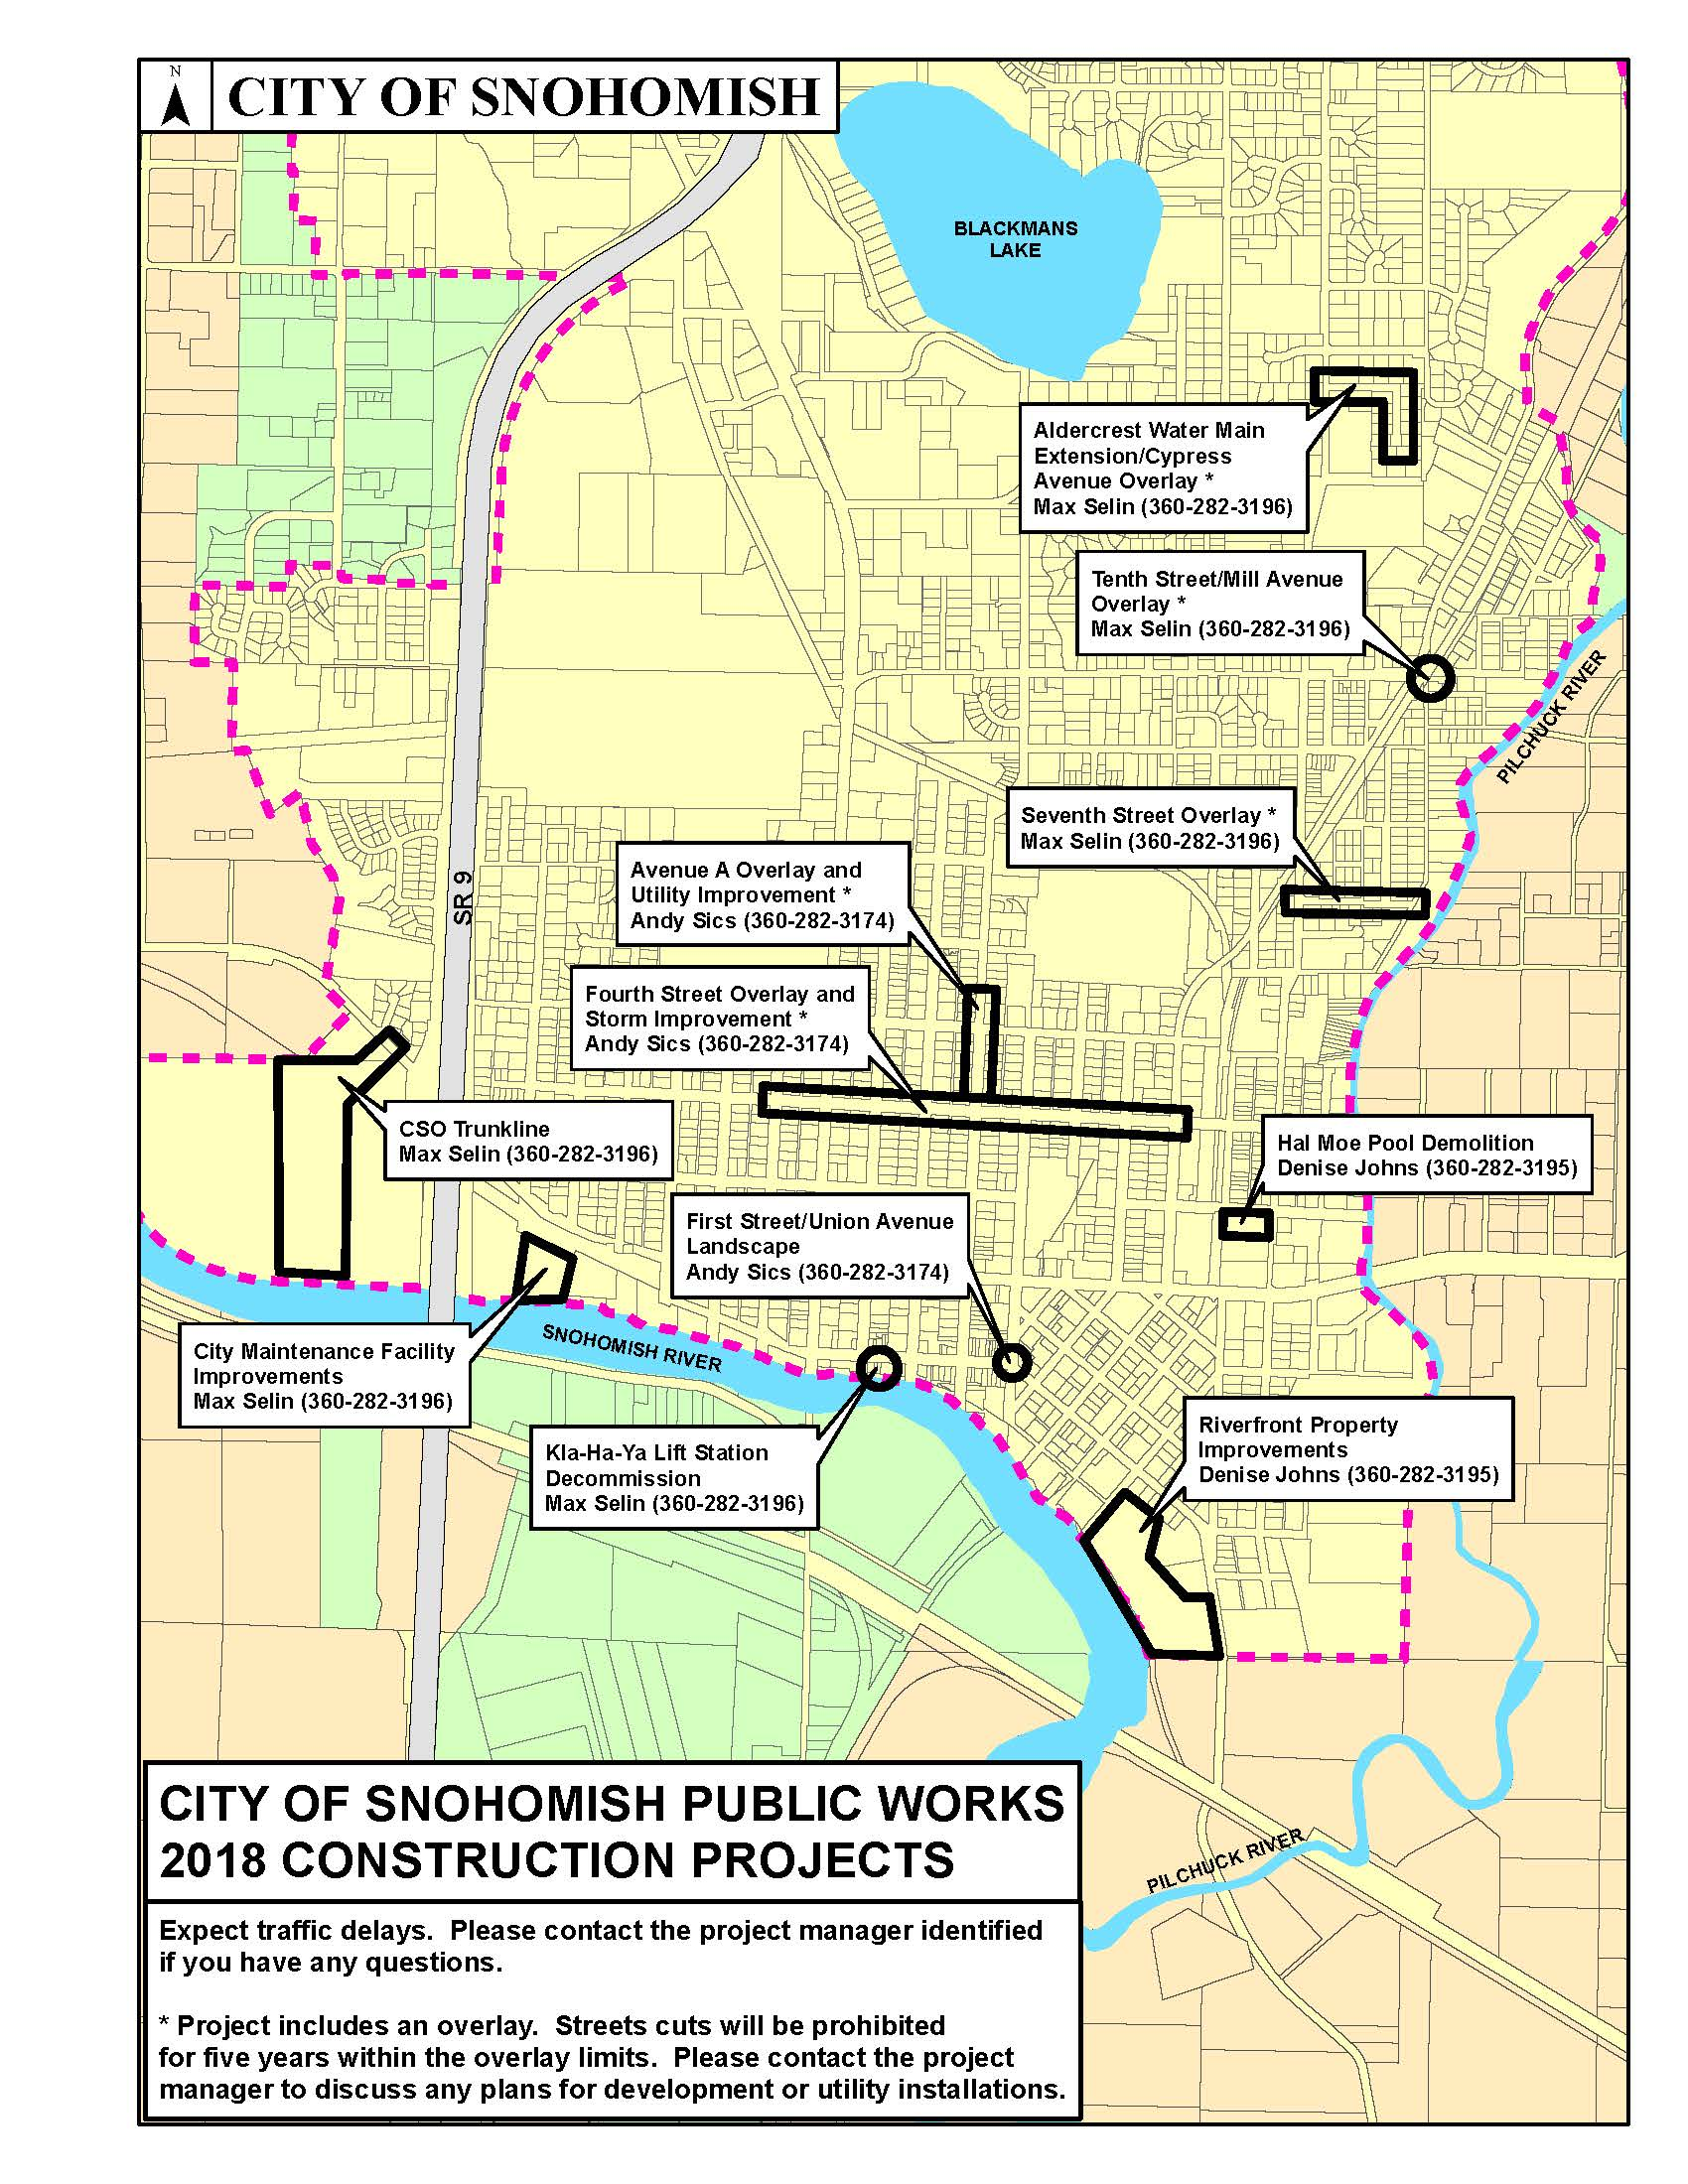 2018 City of Snohomish Construction Projects